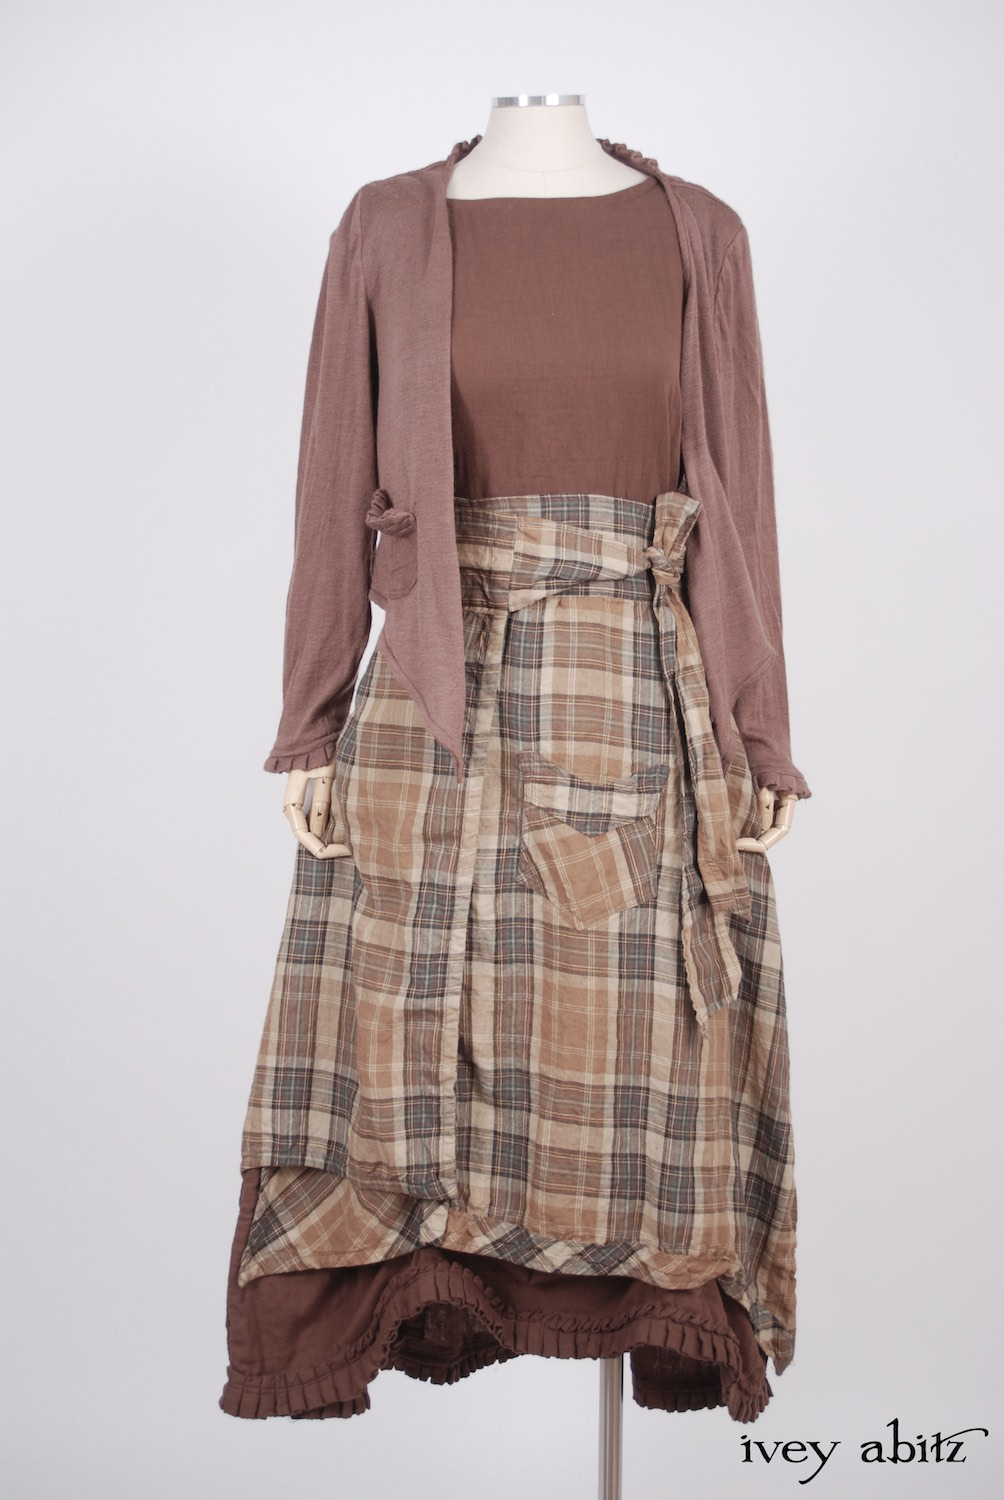 Ivey Abitz - Canterbury Cardigan in Blushed Cashmere Knit  - Highlands Skirt in Eternal Spring Plaid Linen  - Montmorency Frock in Blushed Double Layered Voile, Low Water Length